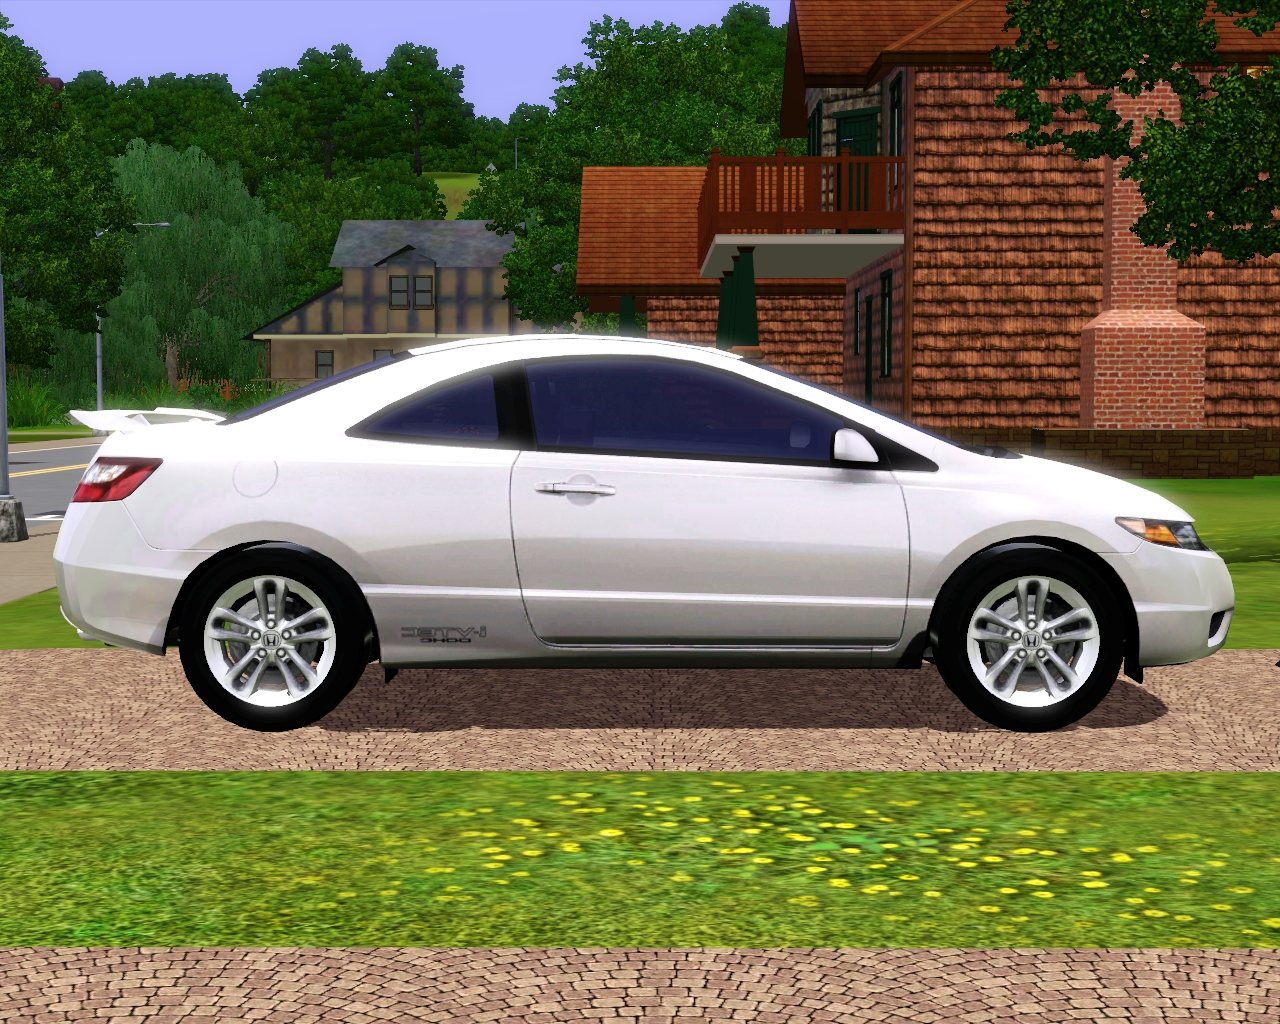 my sims 3 blog 2008 honda civic si coupe by fresh prince. Black Bedroom Furniture Sets. Home Design Ideas